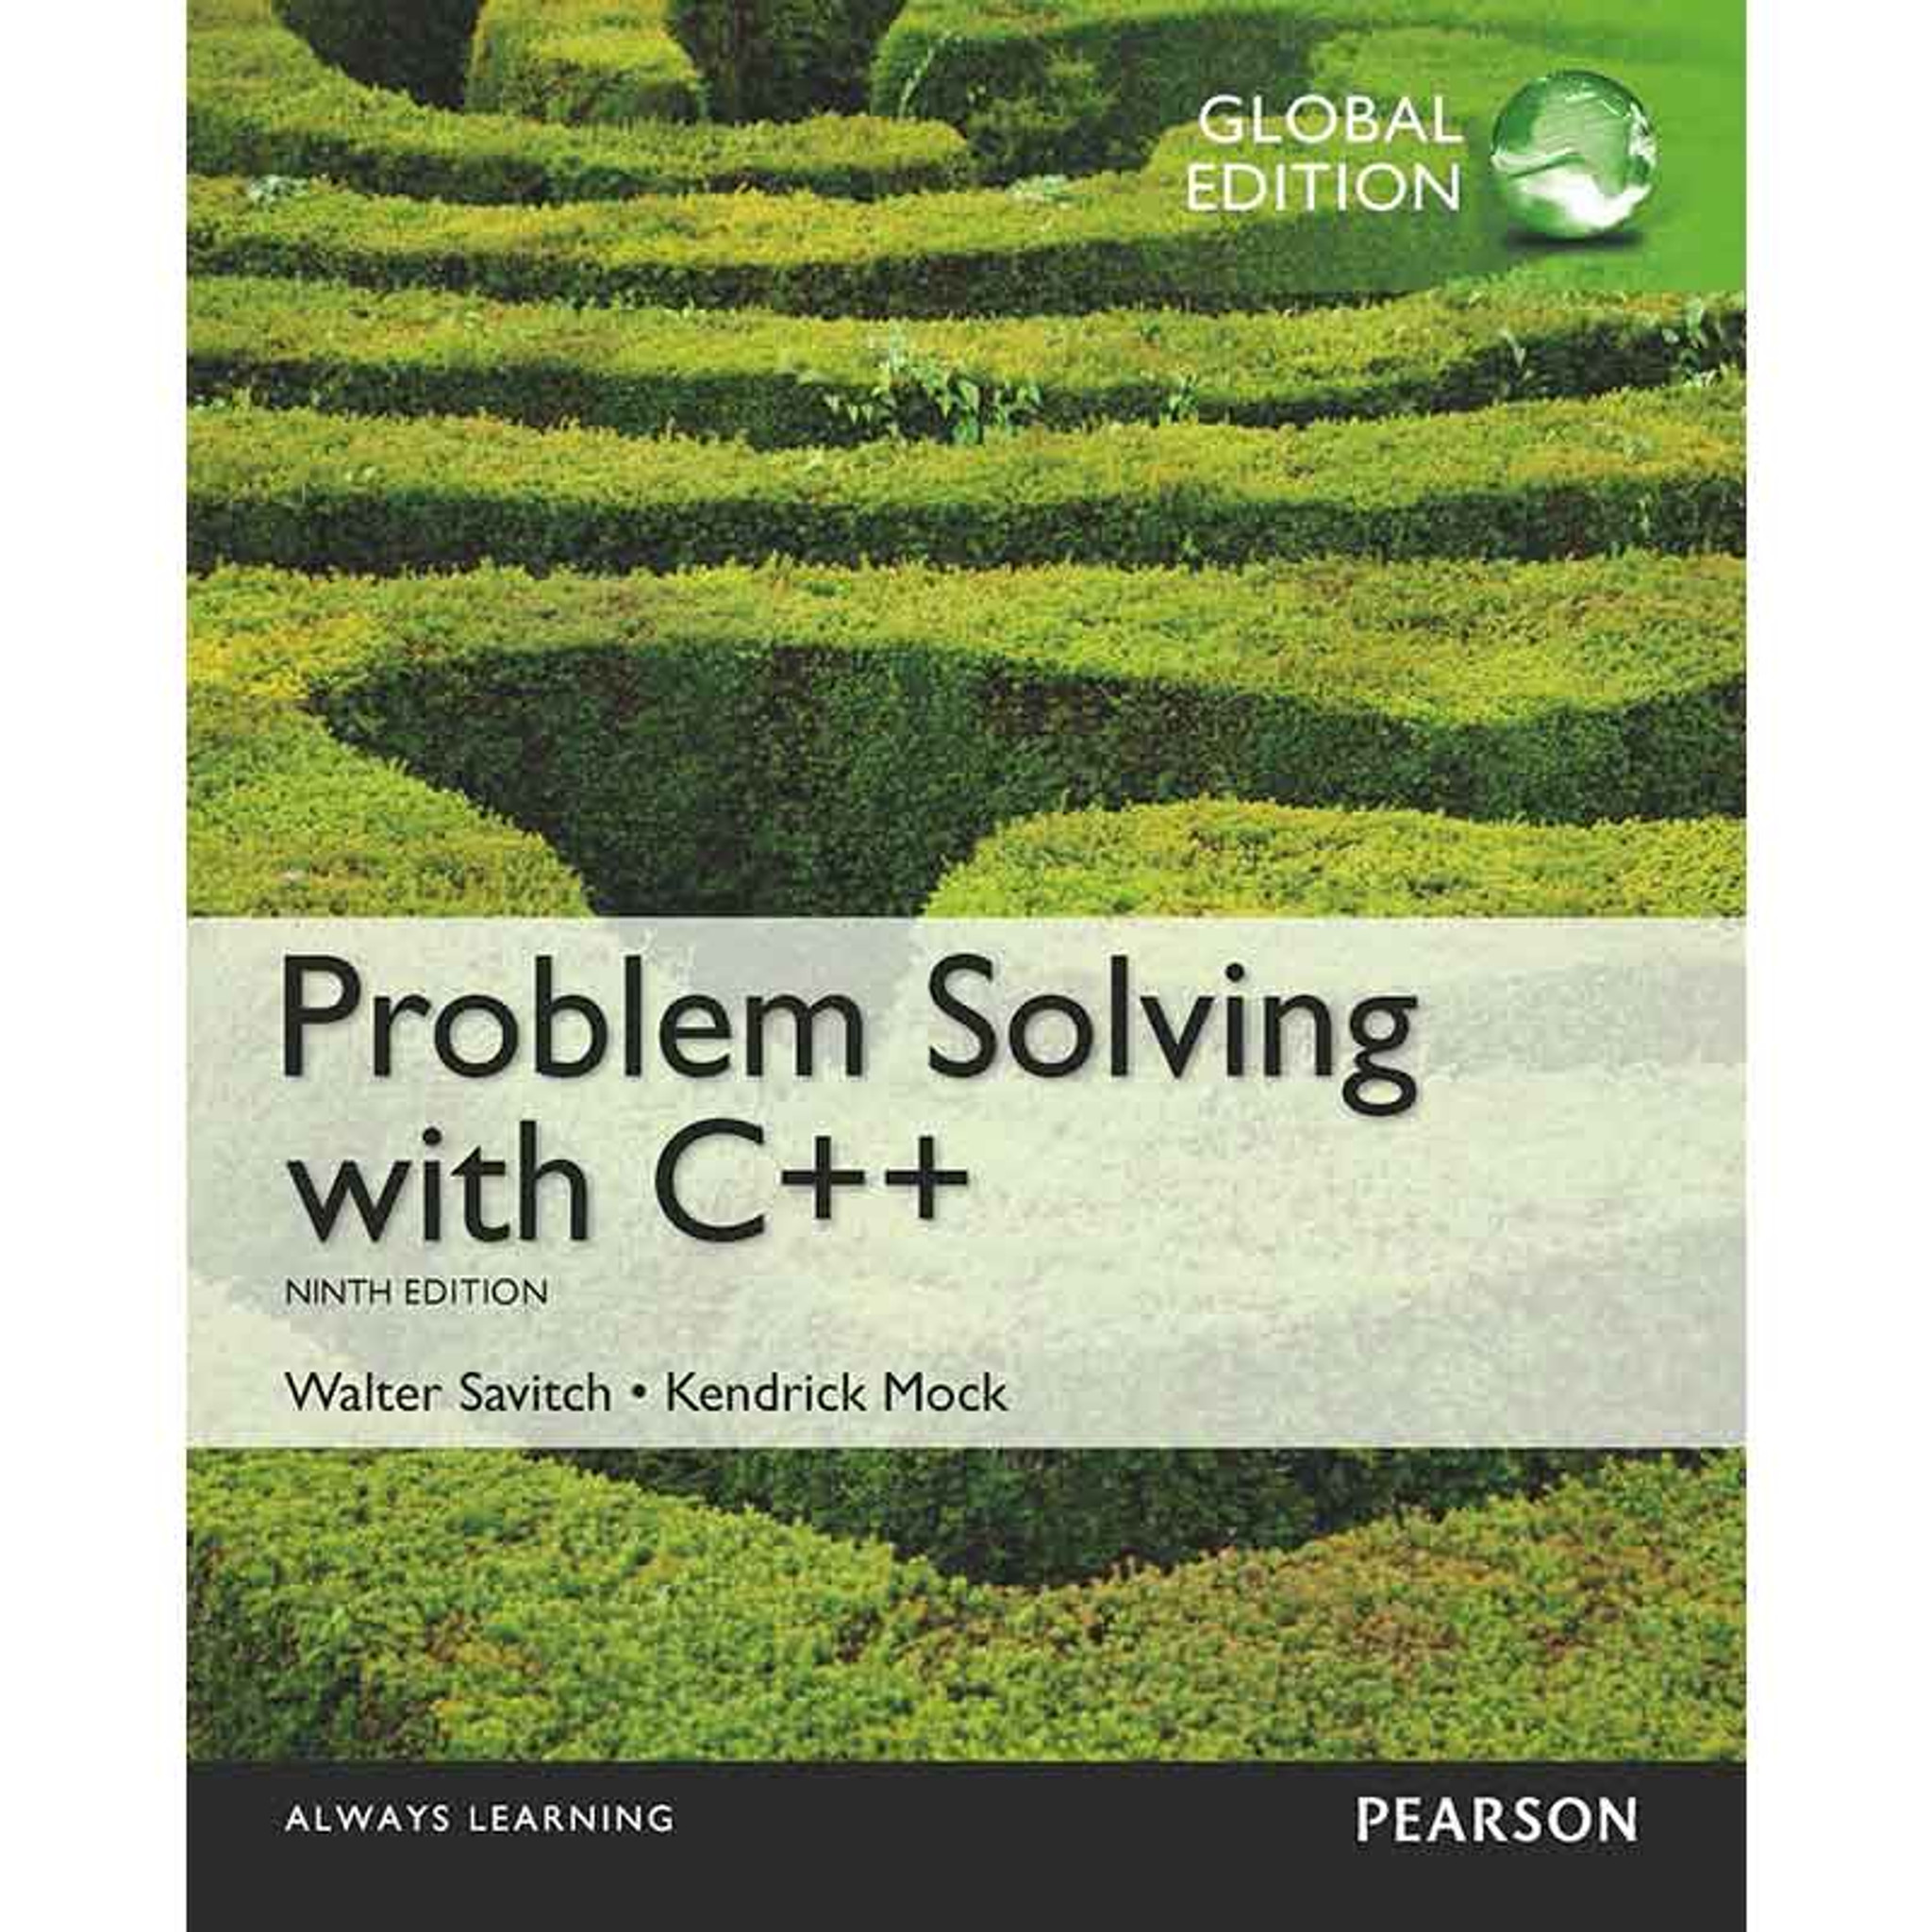 walter savitch problem solving with c++ 7th edition